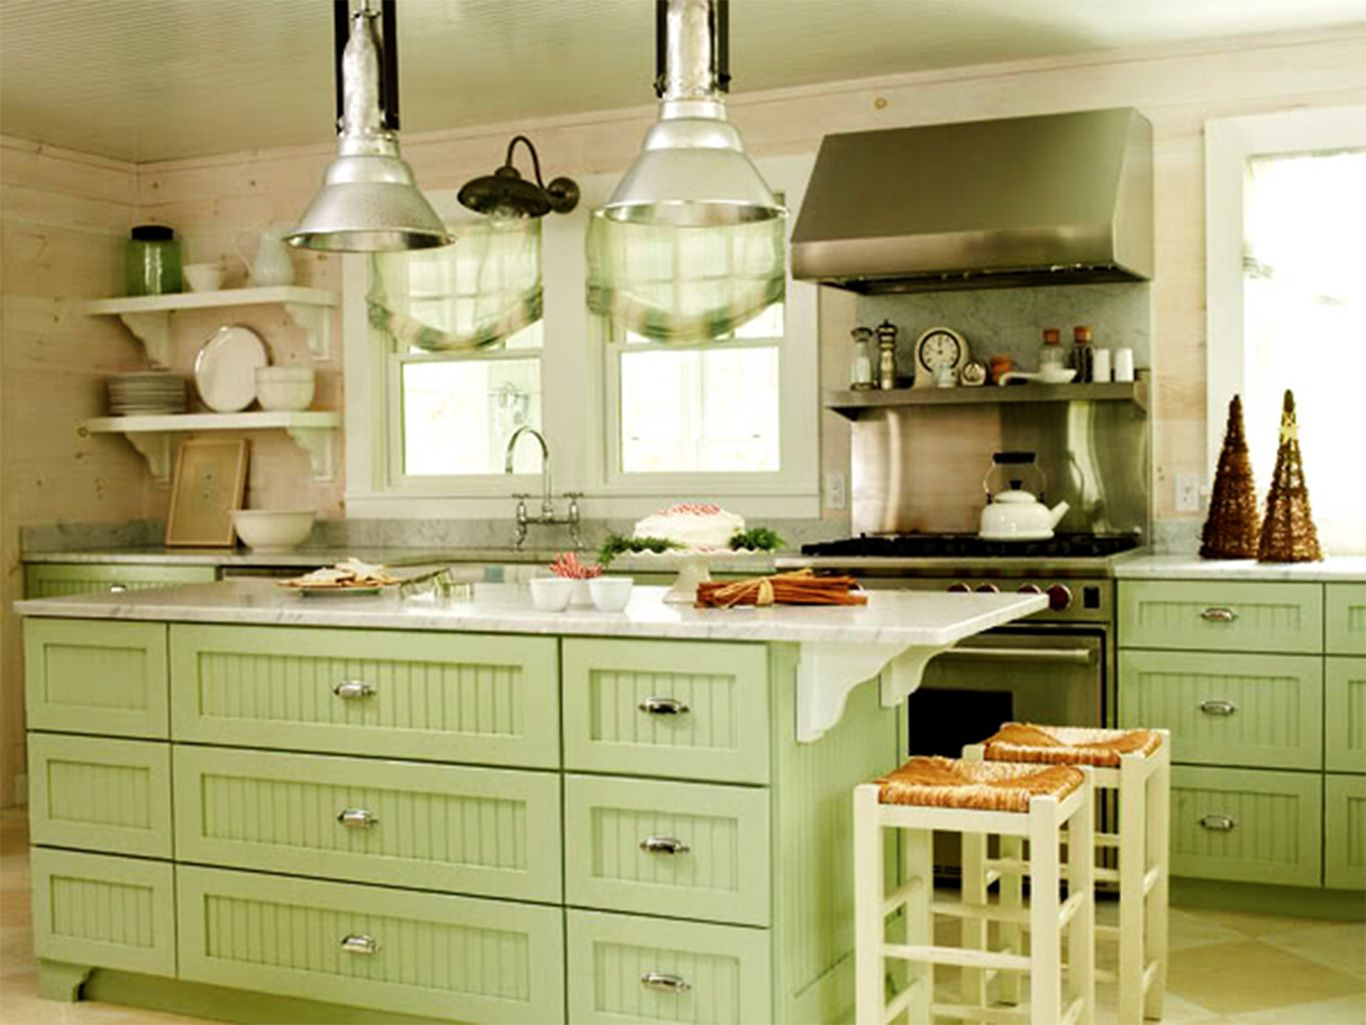 right decoration of green kitchen cabinets with silver knob also